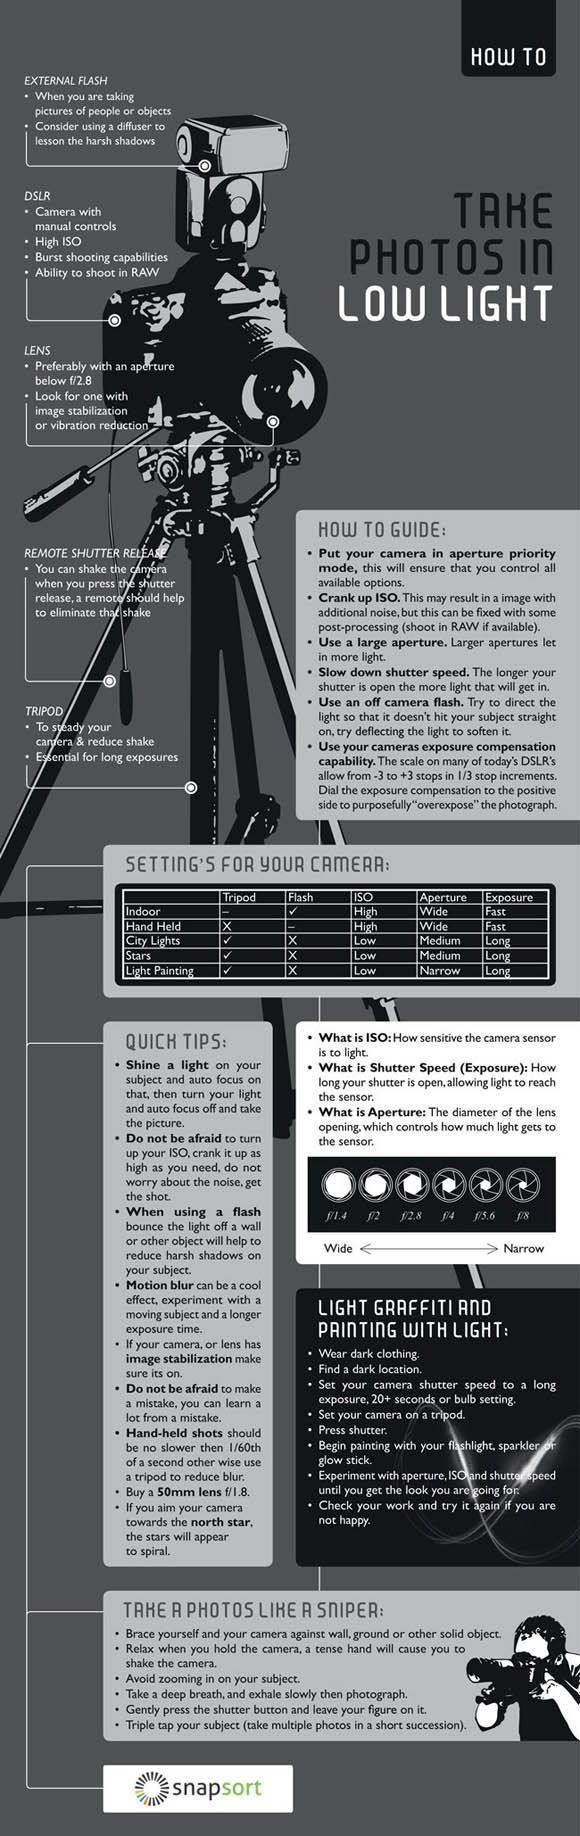 Photography Cheat Sheet - Taking photos in low light - . >>>Please Like before you RePin<<< ... Sponsored by @IntlReviews - World Travel Writers & Photographers Group. Focused on Writing Reviews & taking Photos for the Travel & Tourism Industry & Historical Sites Clients. Rick Stoneking Sr. Owner/Founder